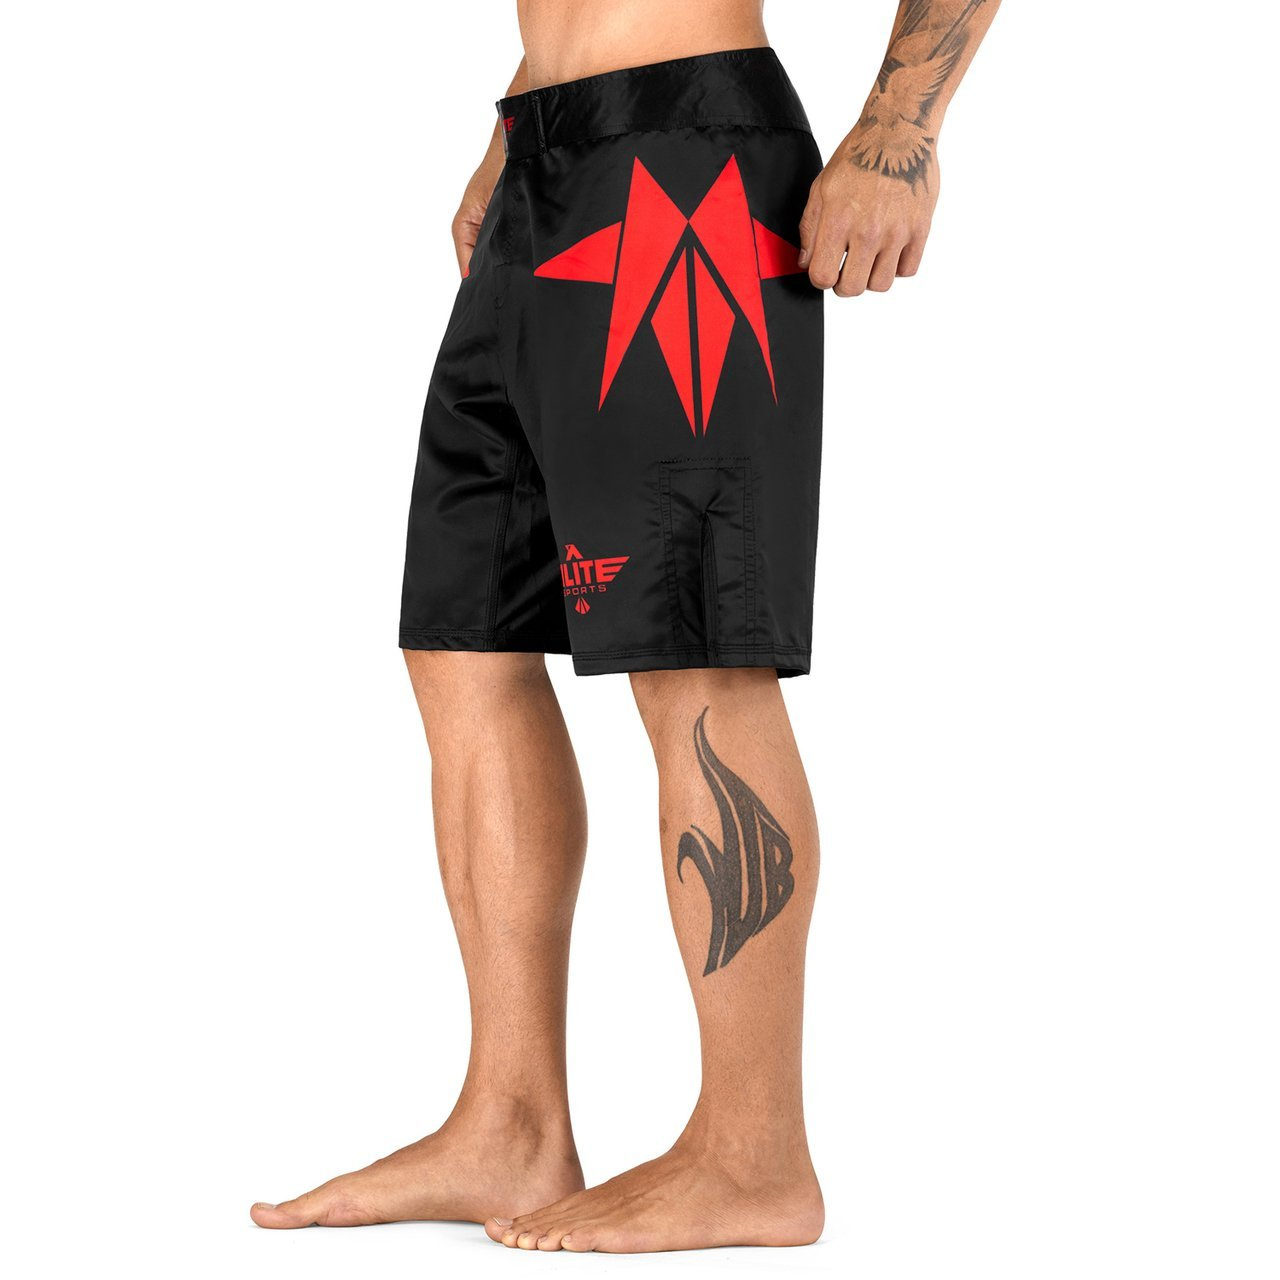 Load image into Gallery viewer, Elite Sports Star Series Sublimation Black/Red MMA Shorts